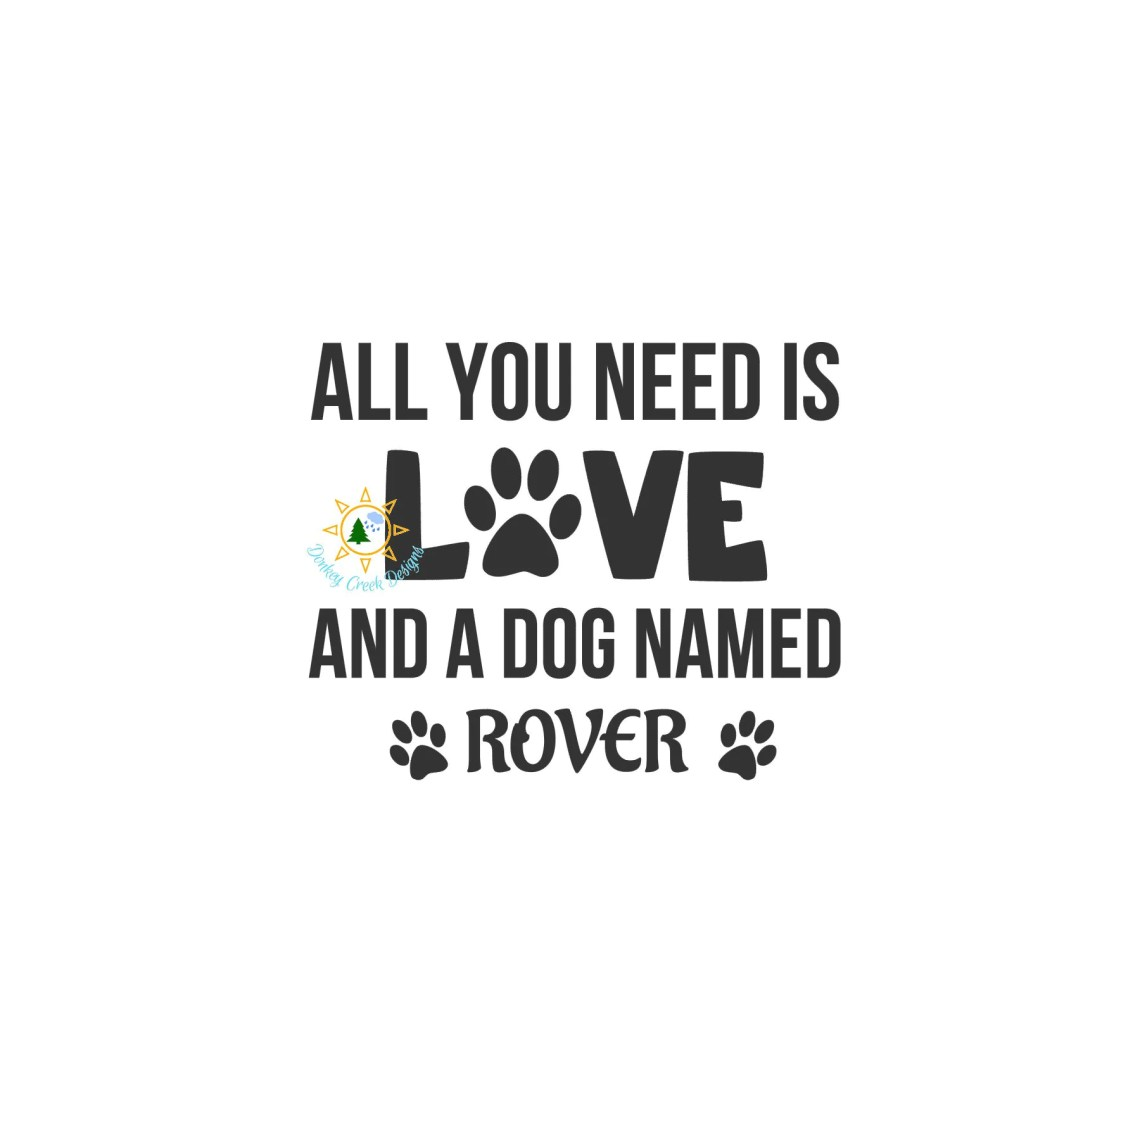 Download All you need is love and a dog custom svg personalized dog ...